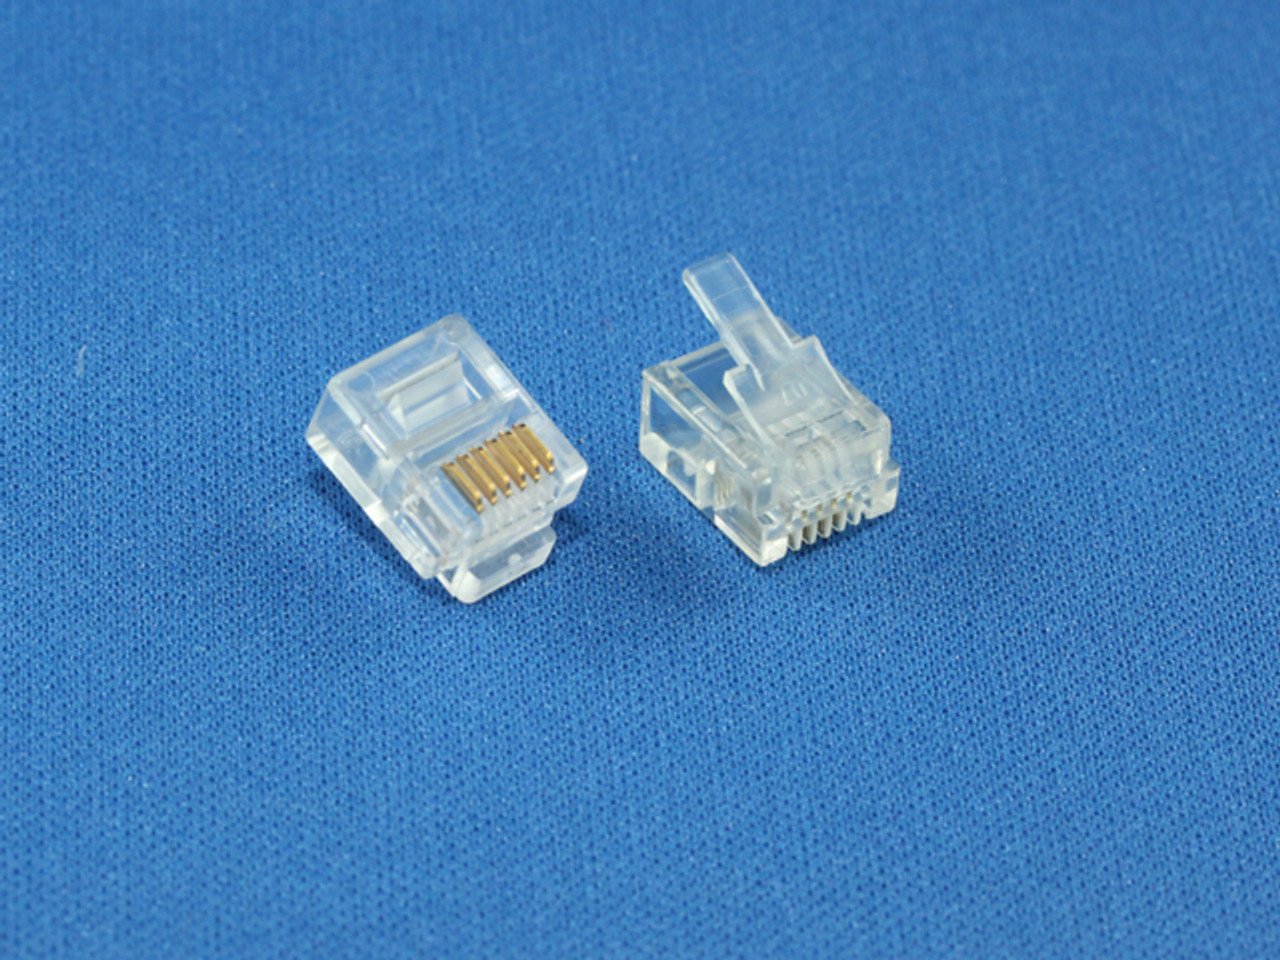 Product image for 6P6C Connector for DIY cabling | CX Computer Superstore